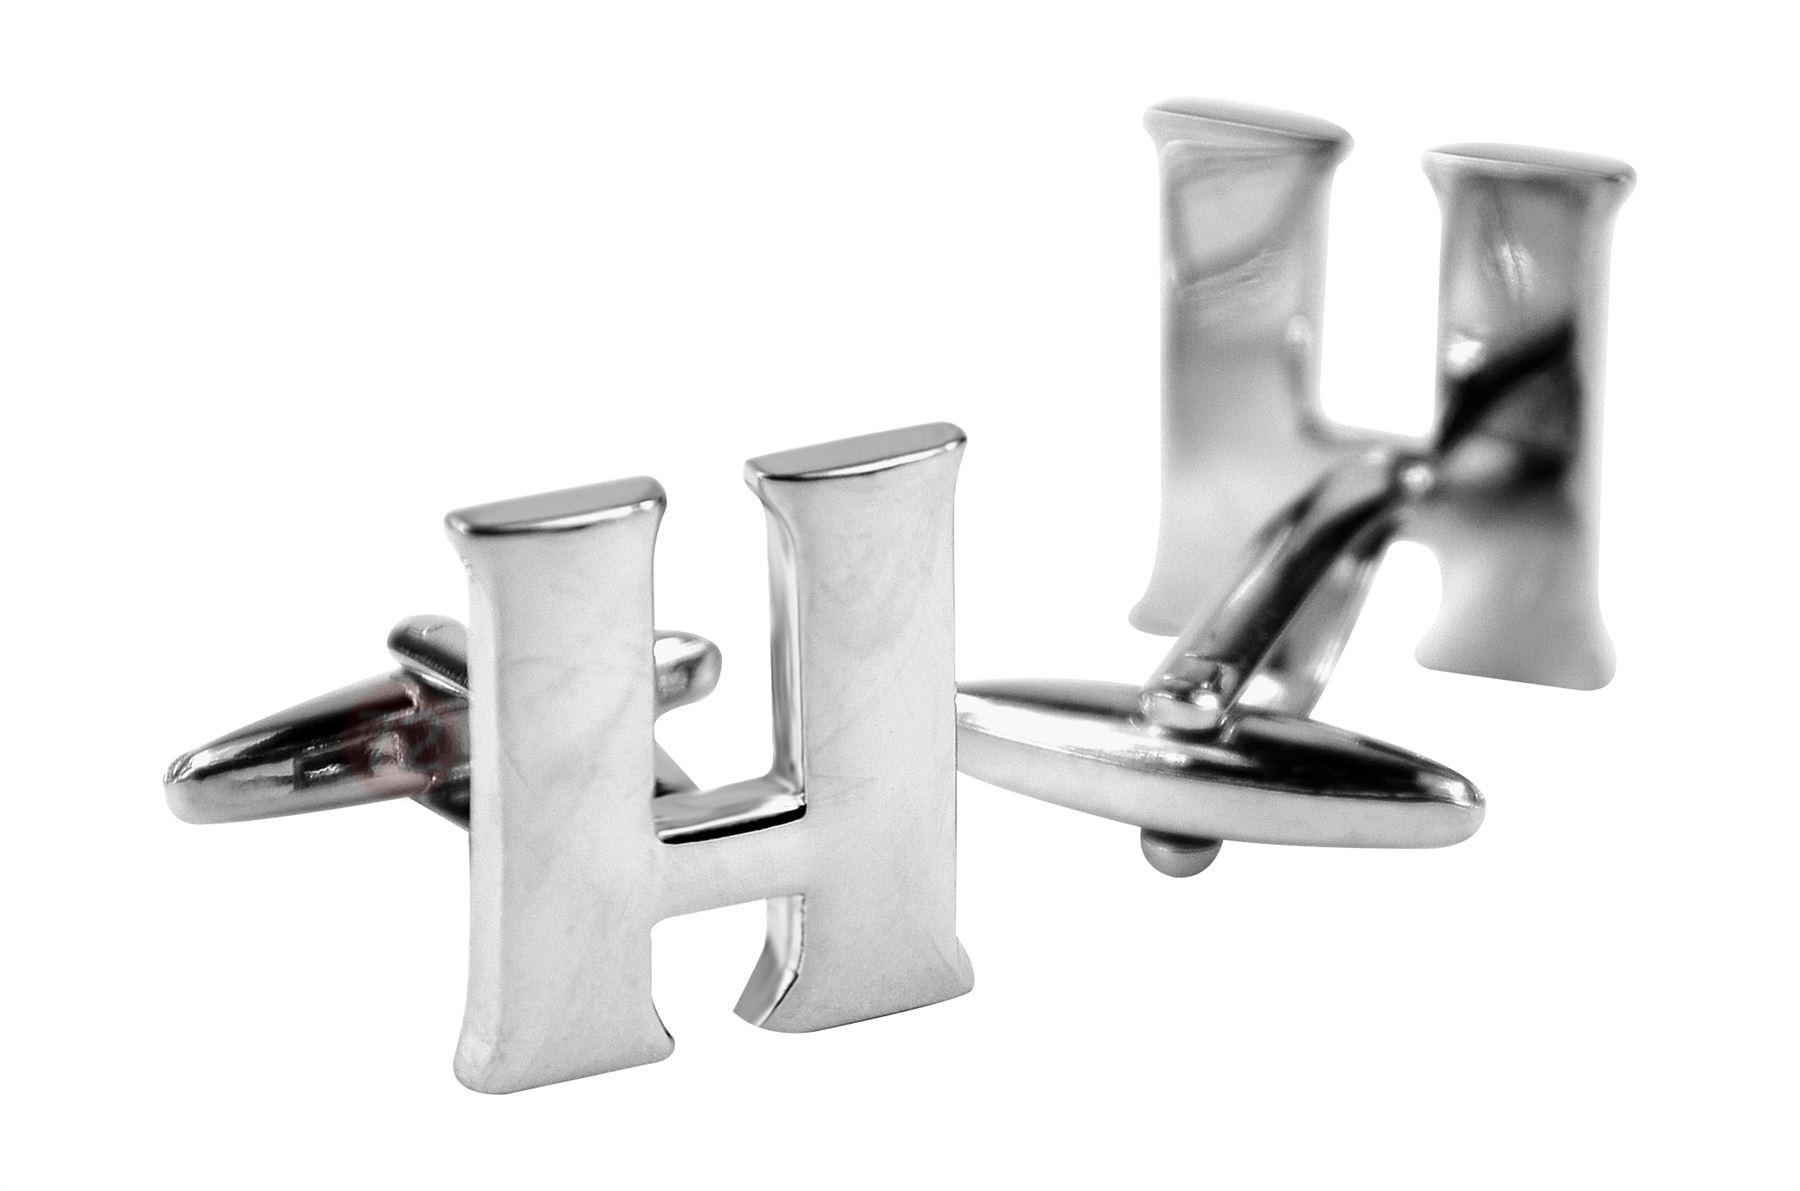 Mens Initial Cufflinks Personalized Sterling Silver Vintage Polished Metal Cufflinks - Silver-H